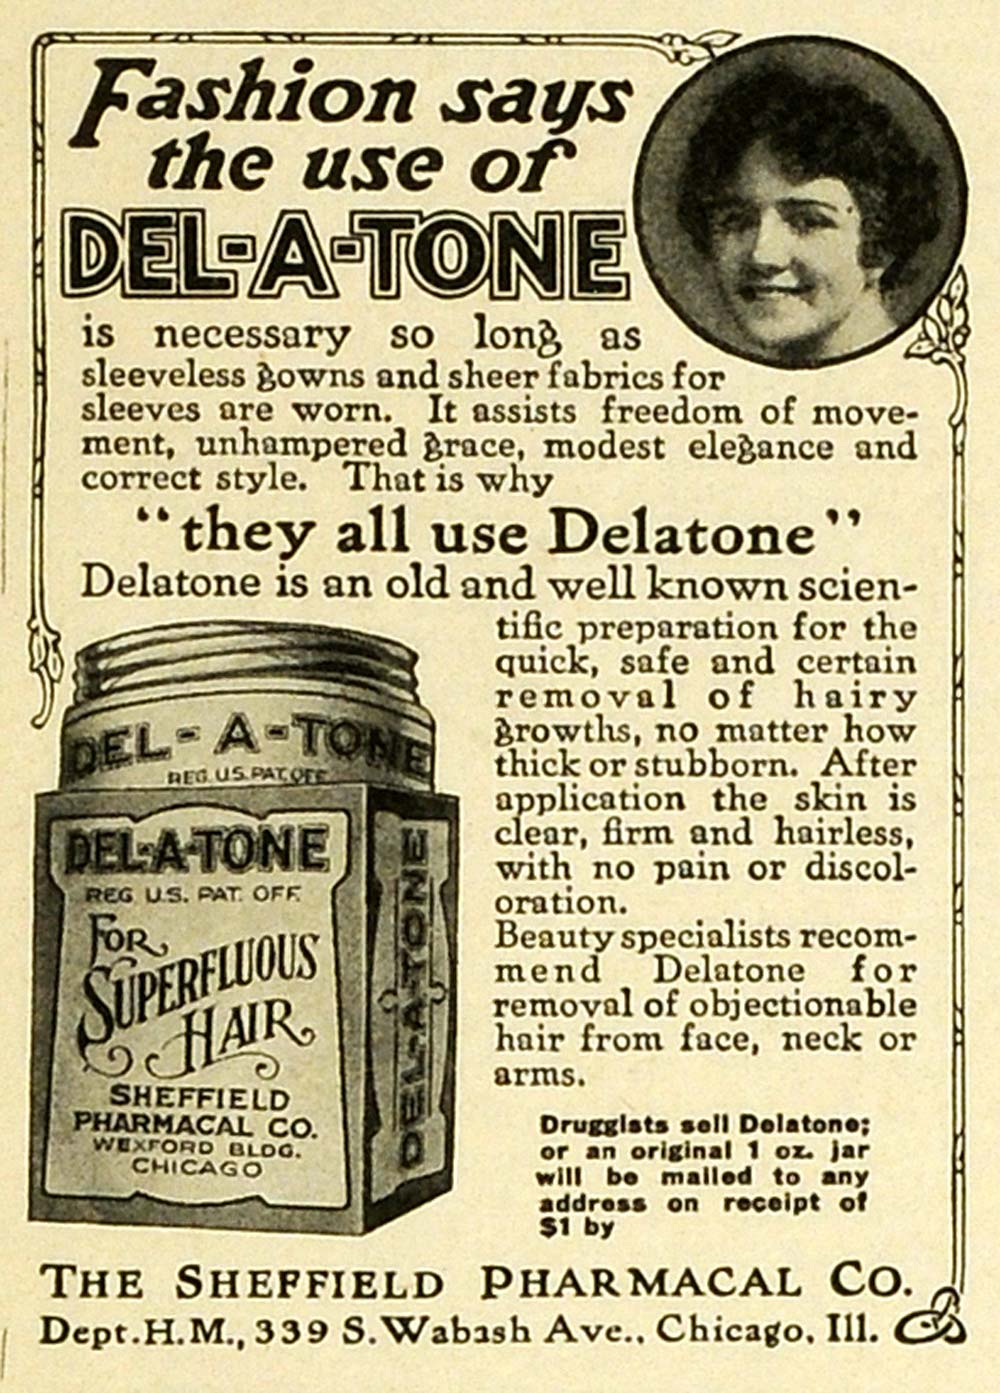 1919 Ad Sheffield Pharmacal Co Del-A-Tone Hair Removal Preparation MPR1